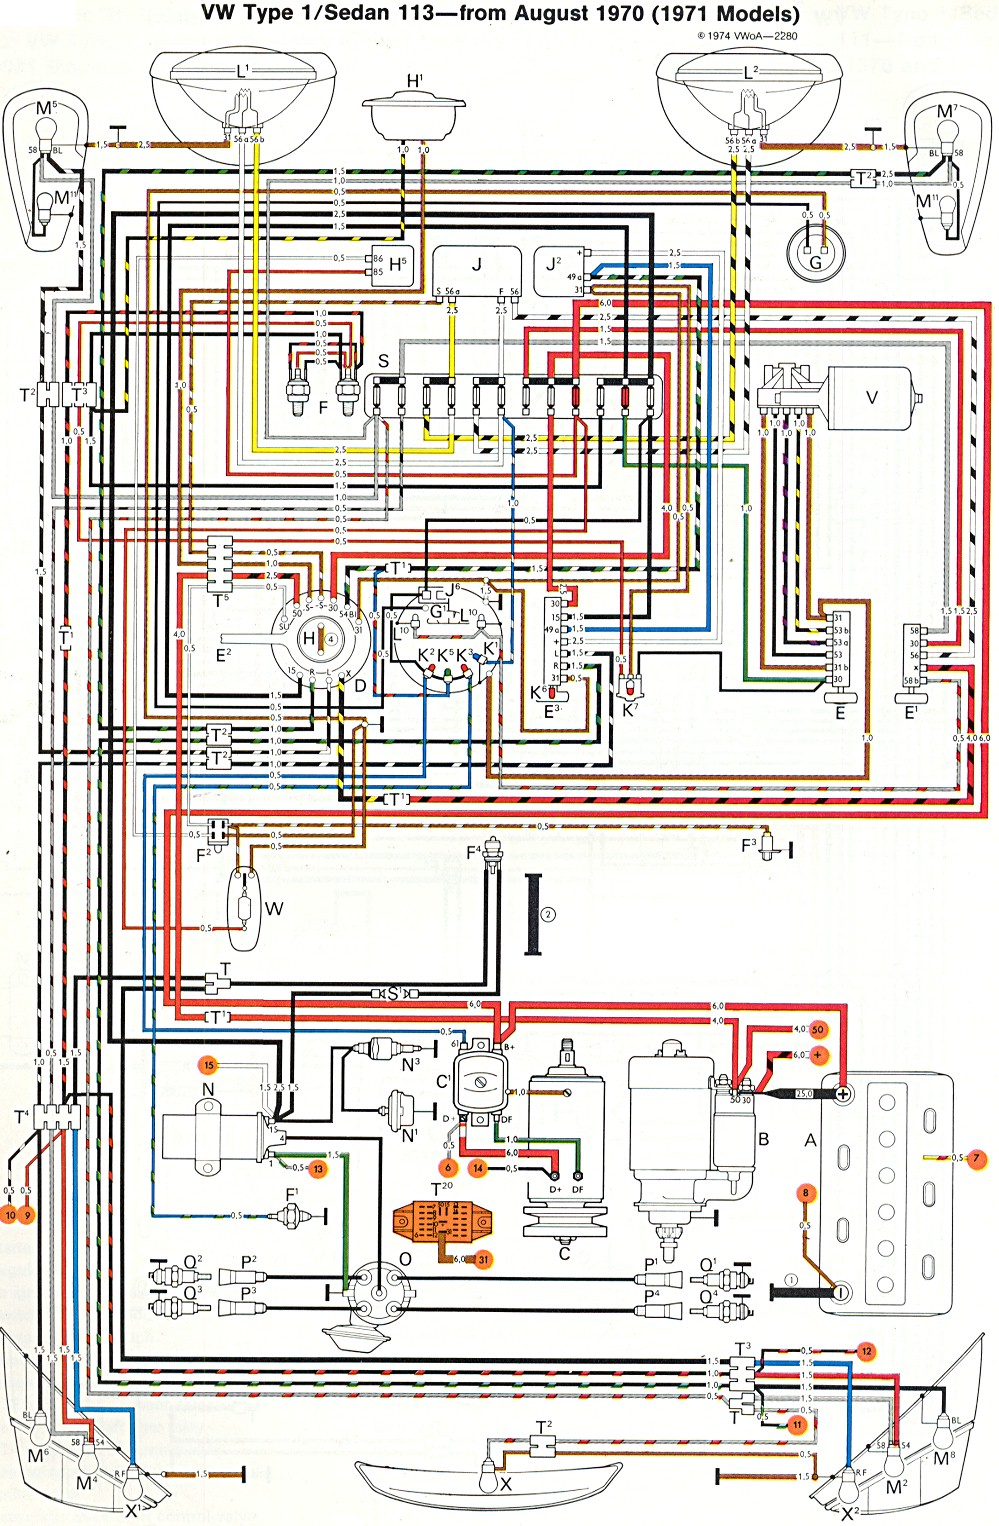 Automotive Wiring Harness Mercedes 2001 S430 Car Diagram Library 1971 Volkswagen Simple 2007 Vw Passat Fuse Panel Super Beetle